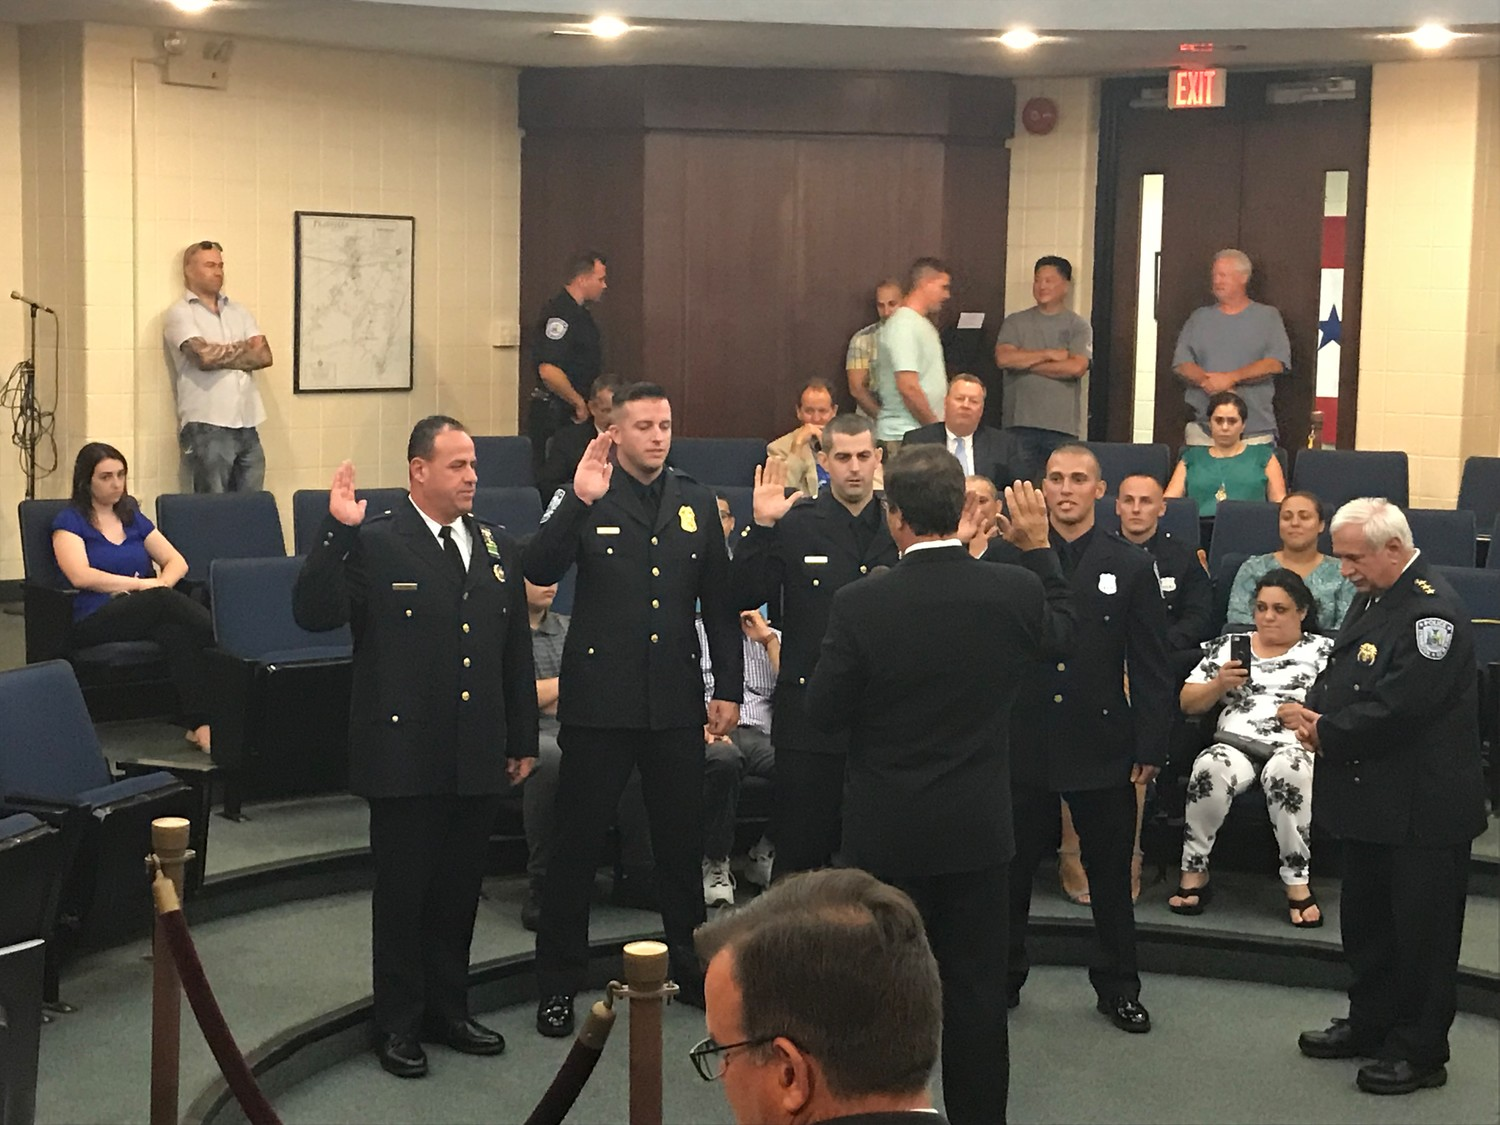 Mayor Alan Beach swore in four police officers to new positions at a meeting on July 16. From left, Brian Paladino was promoted to lieutenant, Sean Haffey became sergeant, Robert Leonard made detective and Jean-Claude James joined the force.